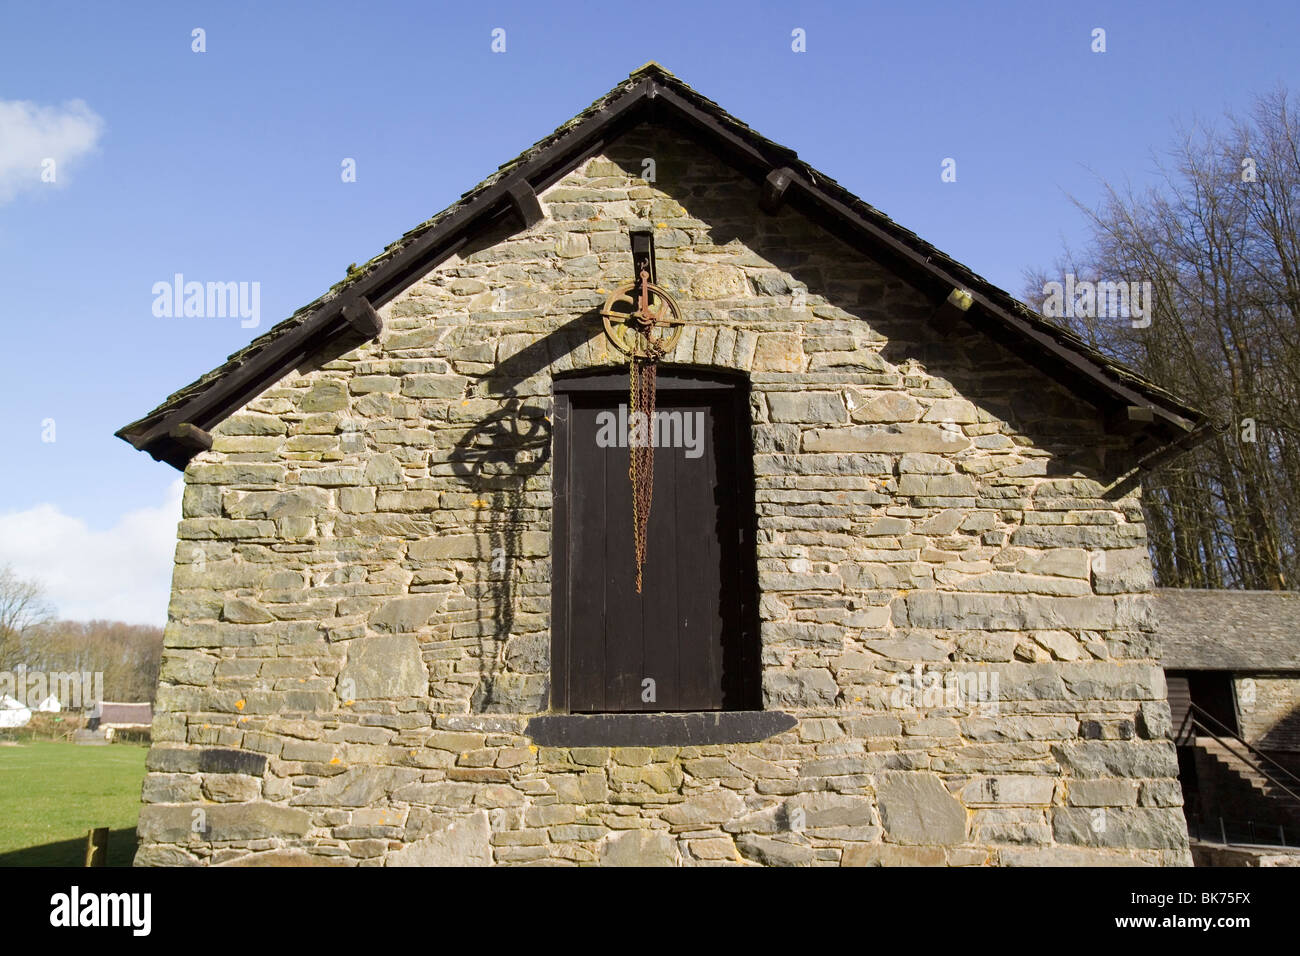 Stone Barn Upper Barn Door Hayloft Grain Store Pulley